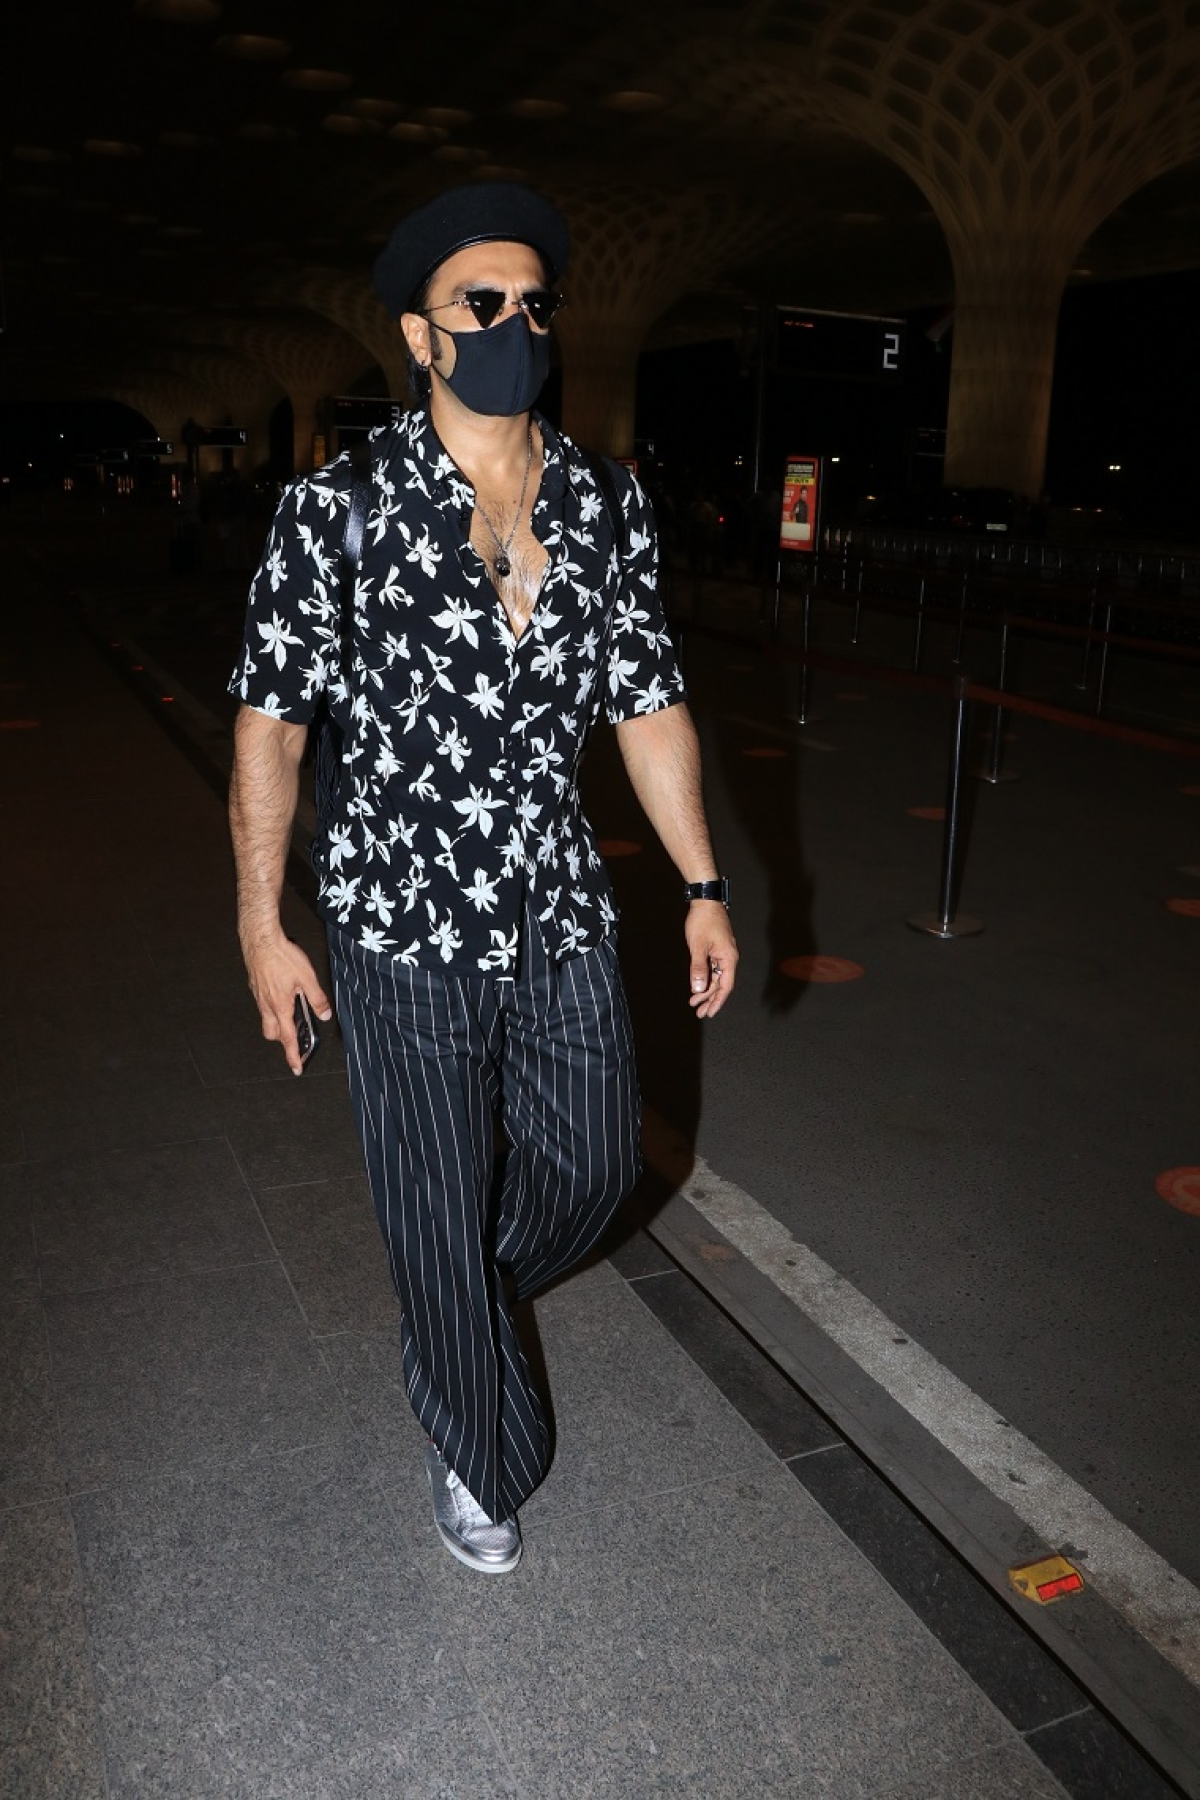 Go black and white celeb style: Ranveer Singh, Preity Zinta, Kanika Kapoor and other celebs give monochrome goals